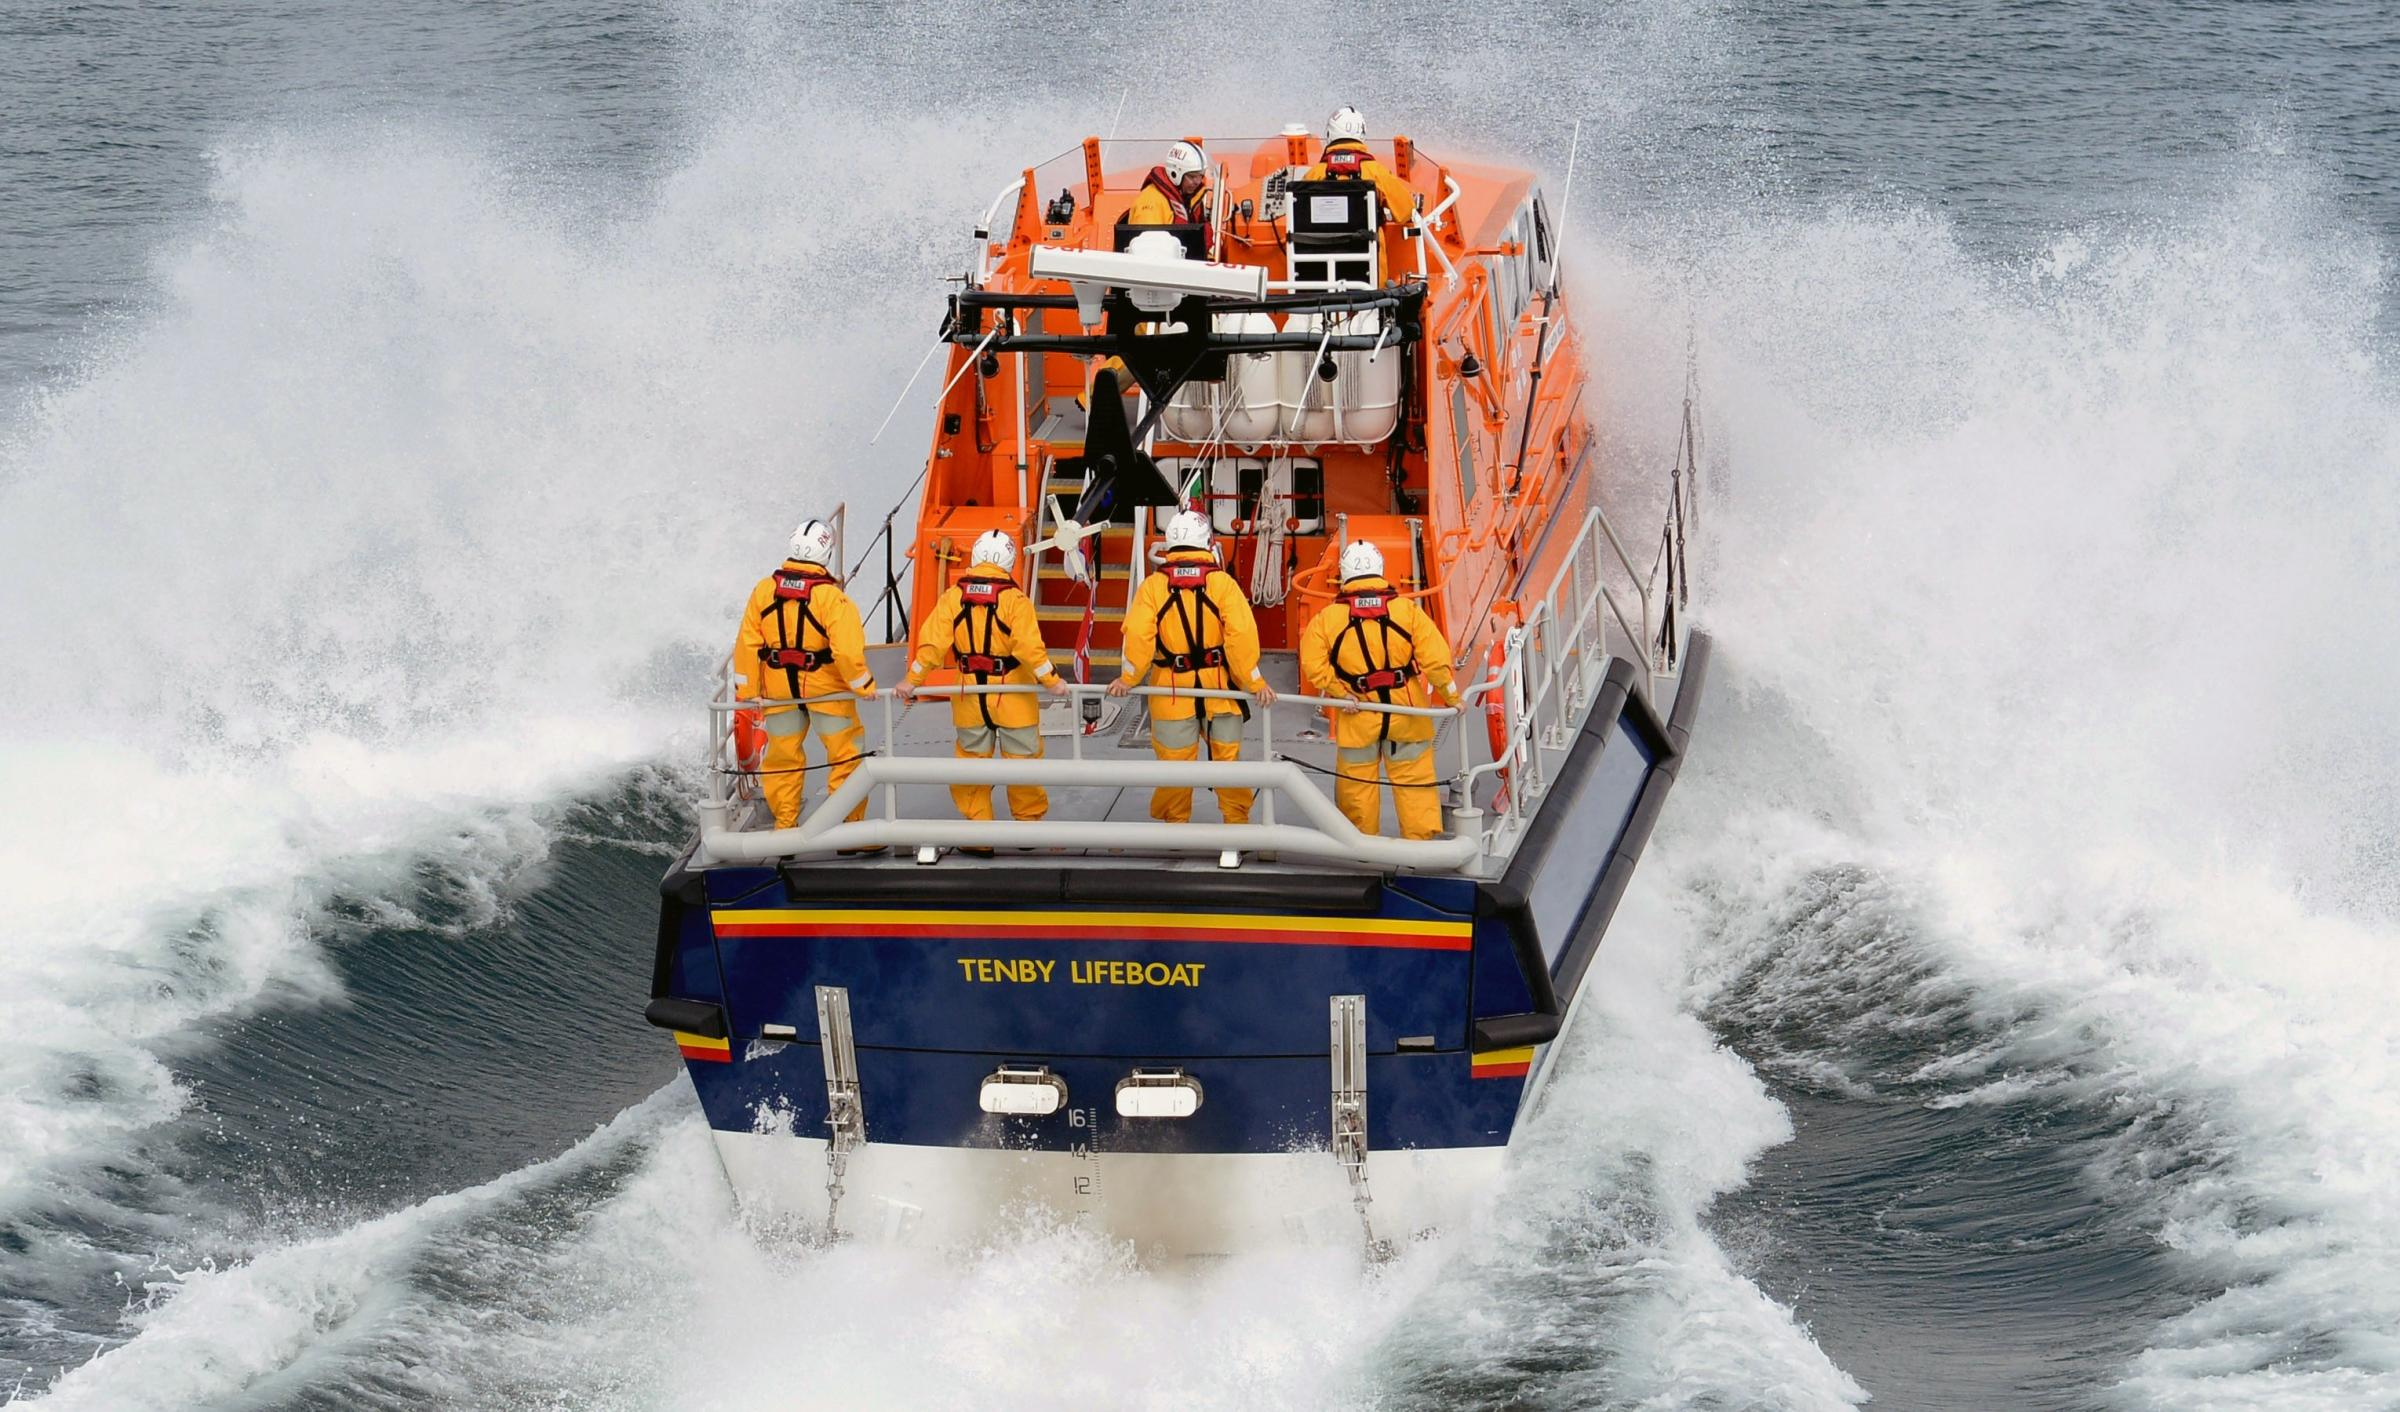 Woman rescued from Caldey after suspected arm fracture